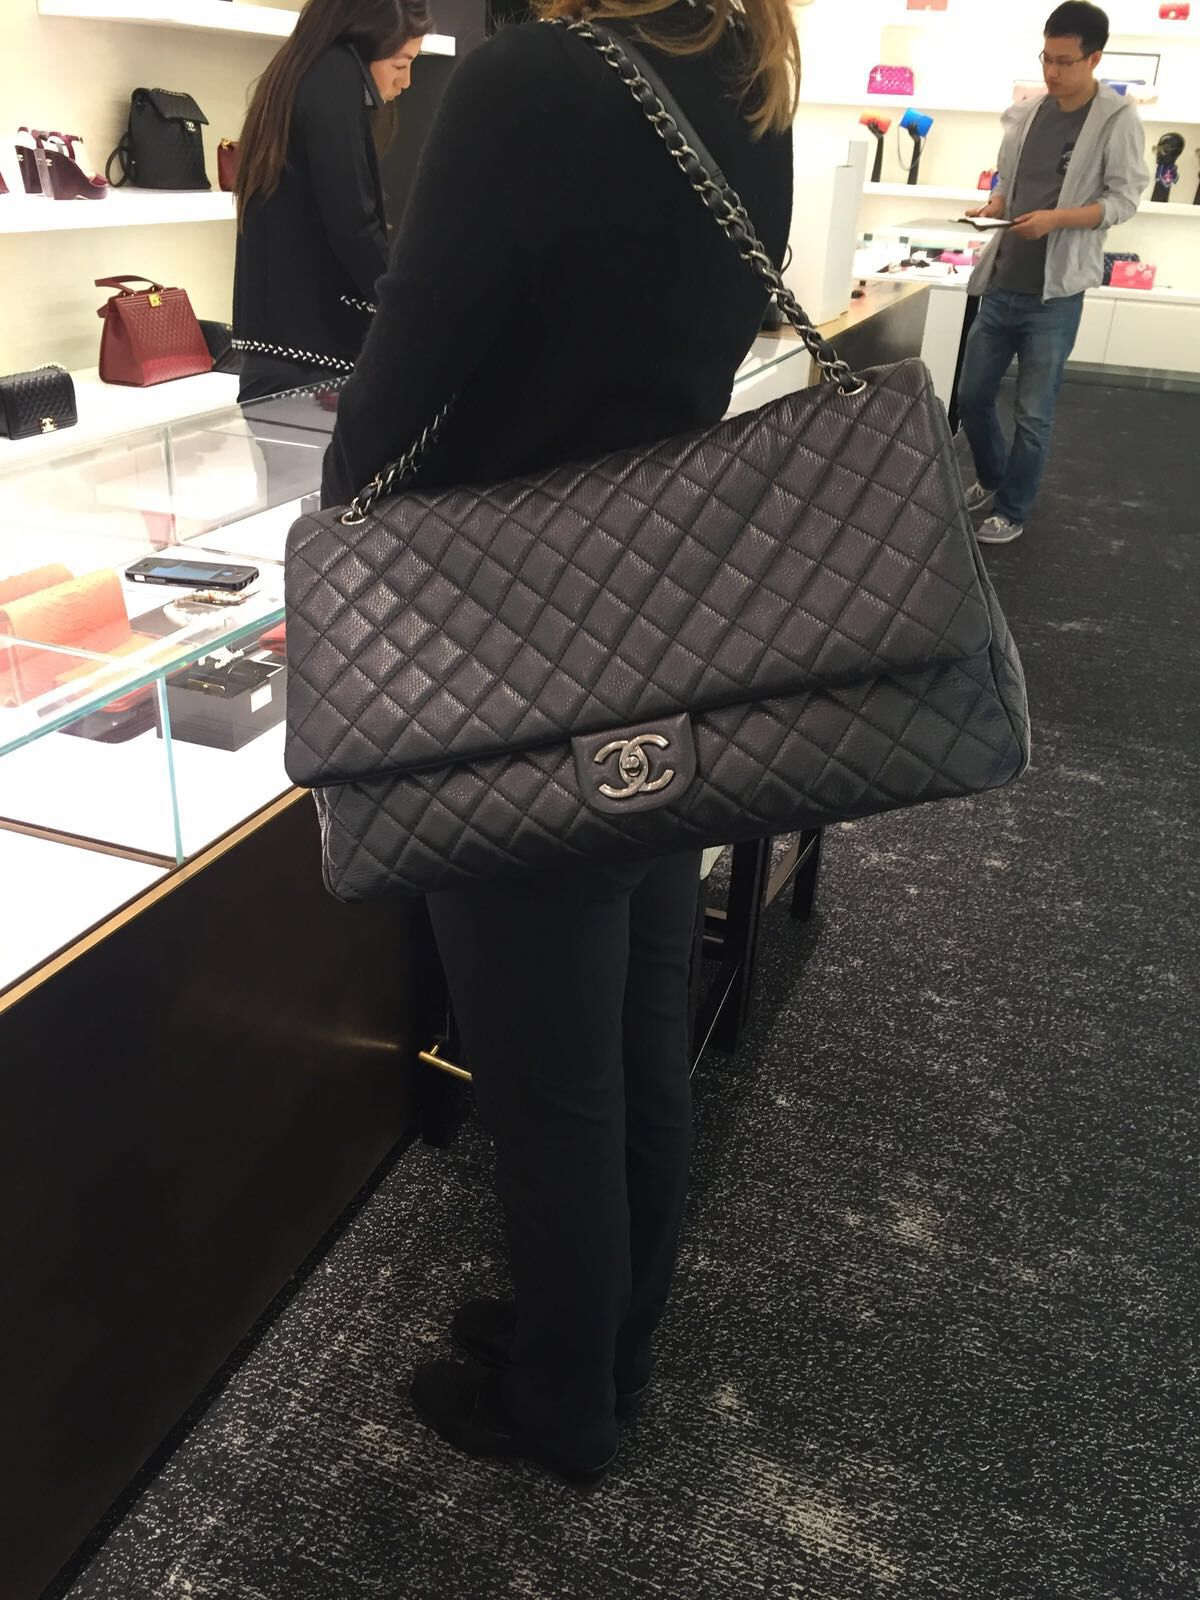 chanel xxl travel flap bag. xxl chanel flap bag spring summer 2016 airport collection travel